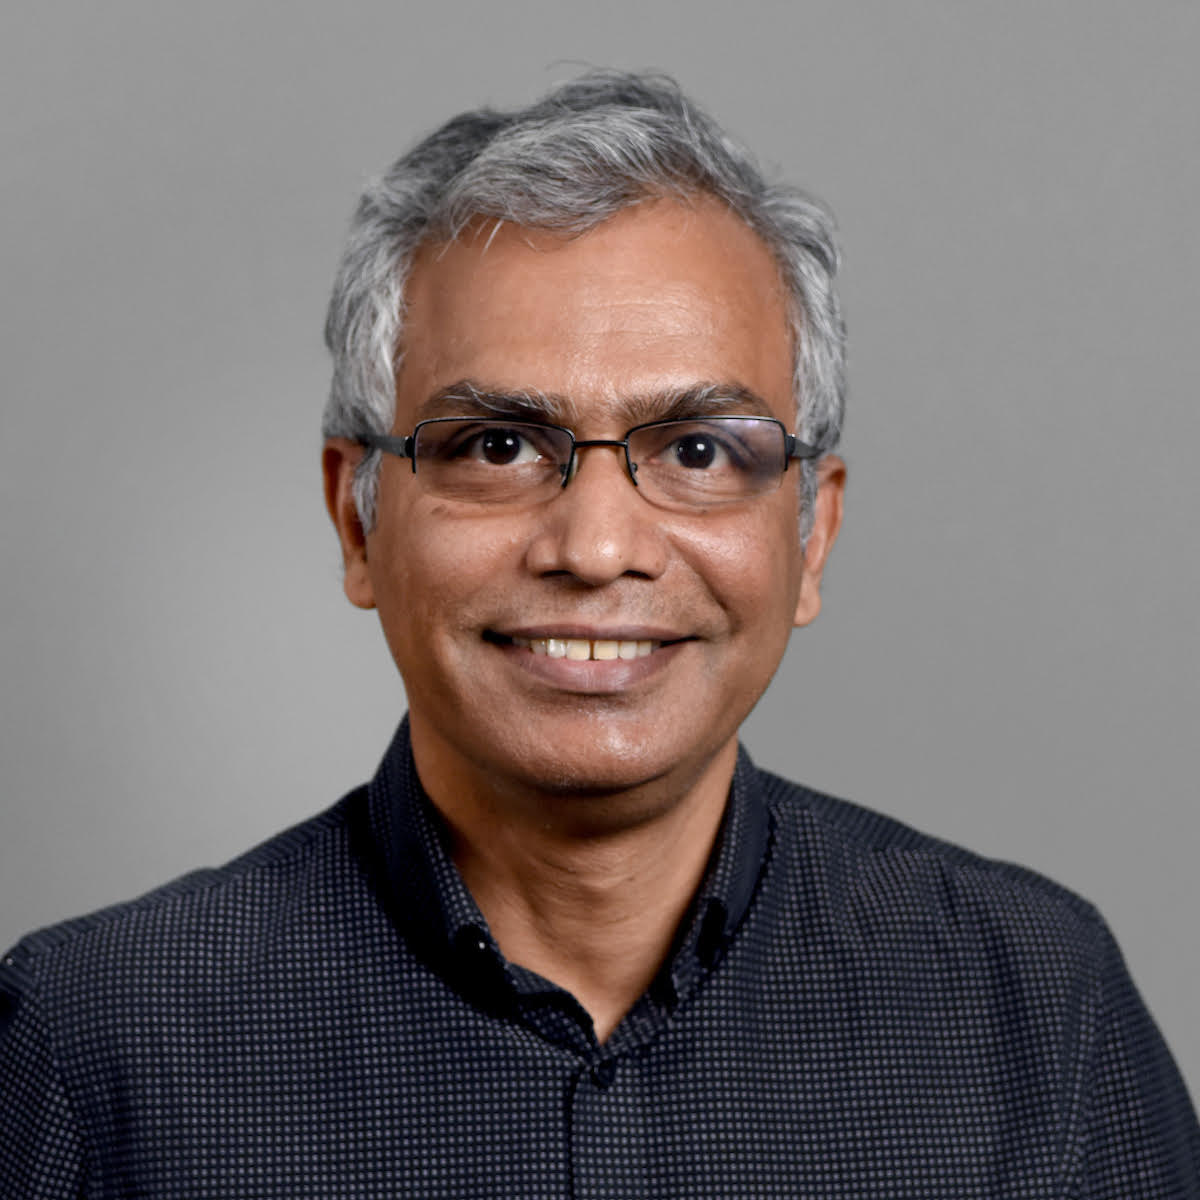 Subbarao Kambhampati, Alumnus of the Year